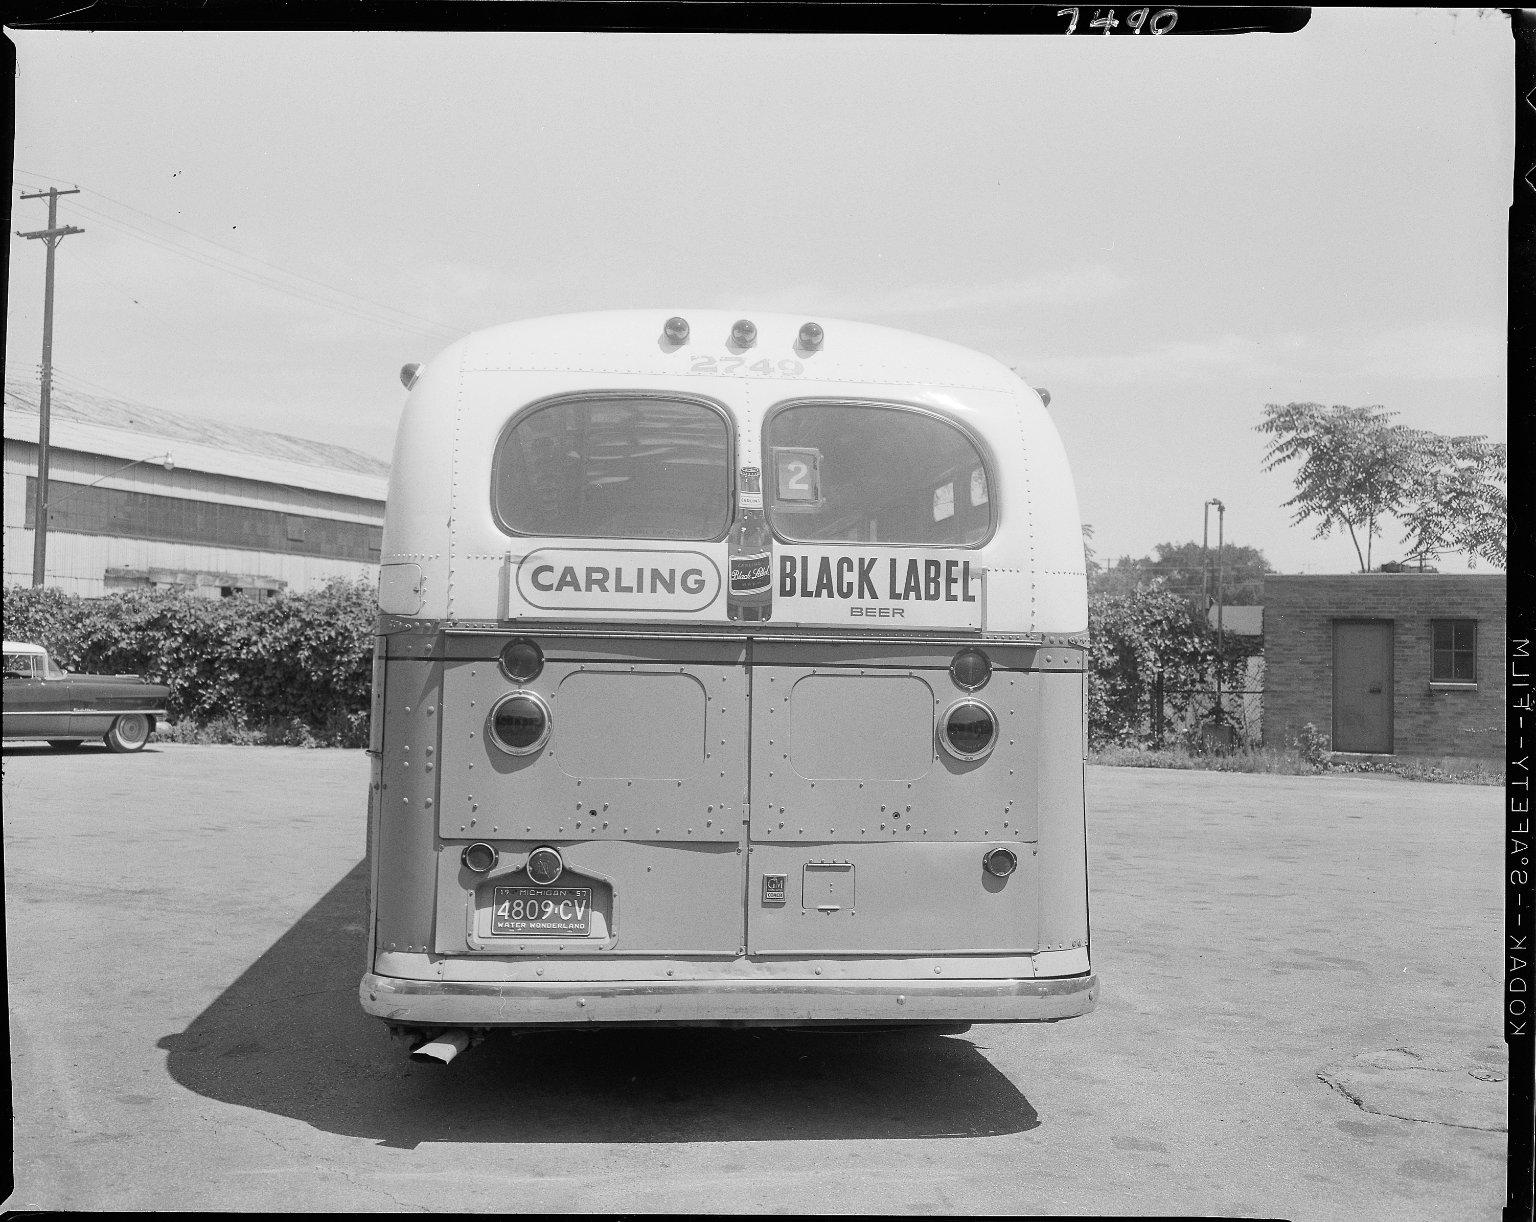 Bus with advertising sign, Carling Black Label Beer